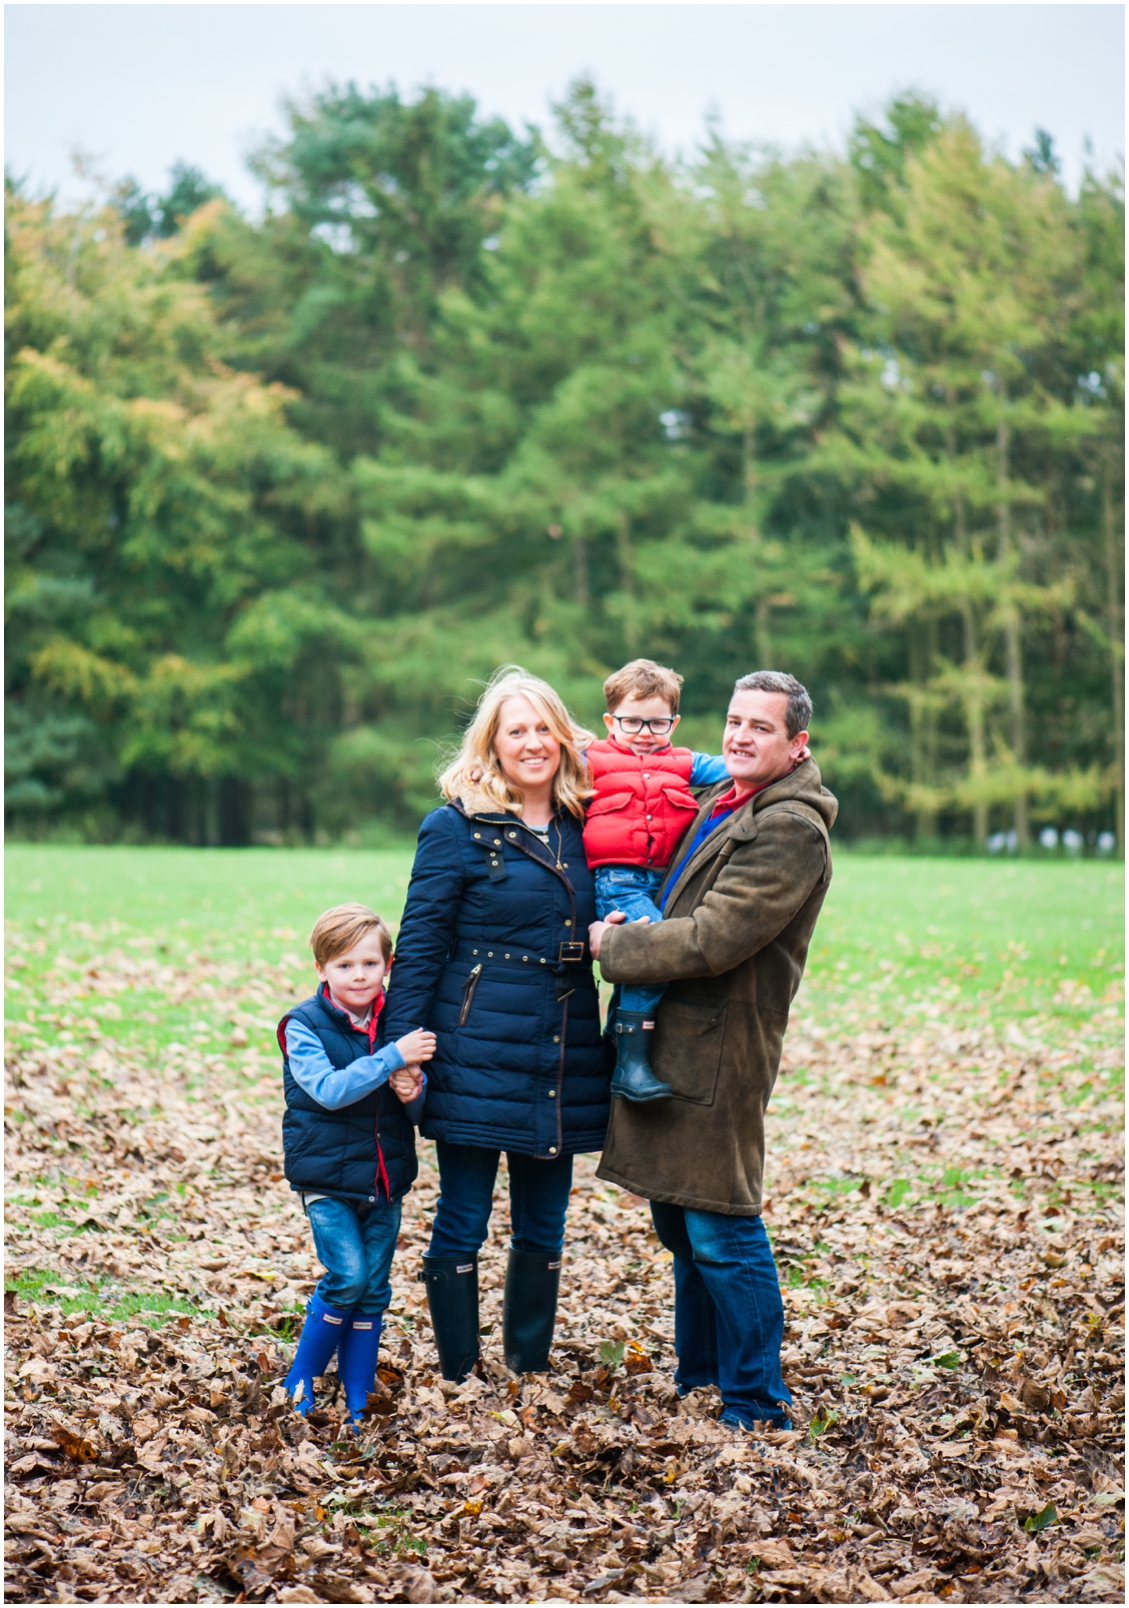 Clifton Family, Sutton Park, Family Photography, Family Shoot, Sutton Coldfield, West Midlands, Lisa Carpenter Photography, photos